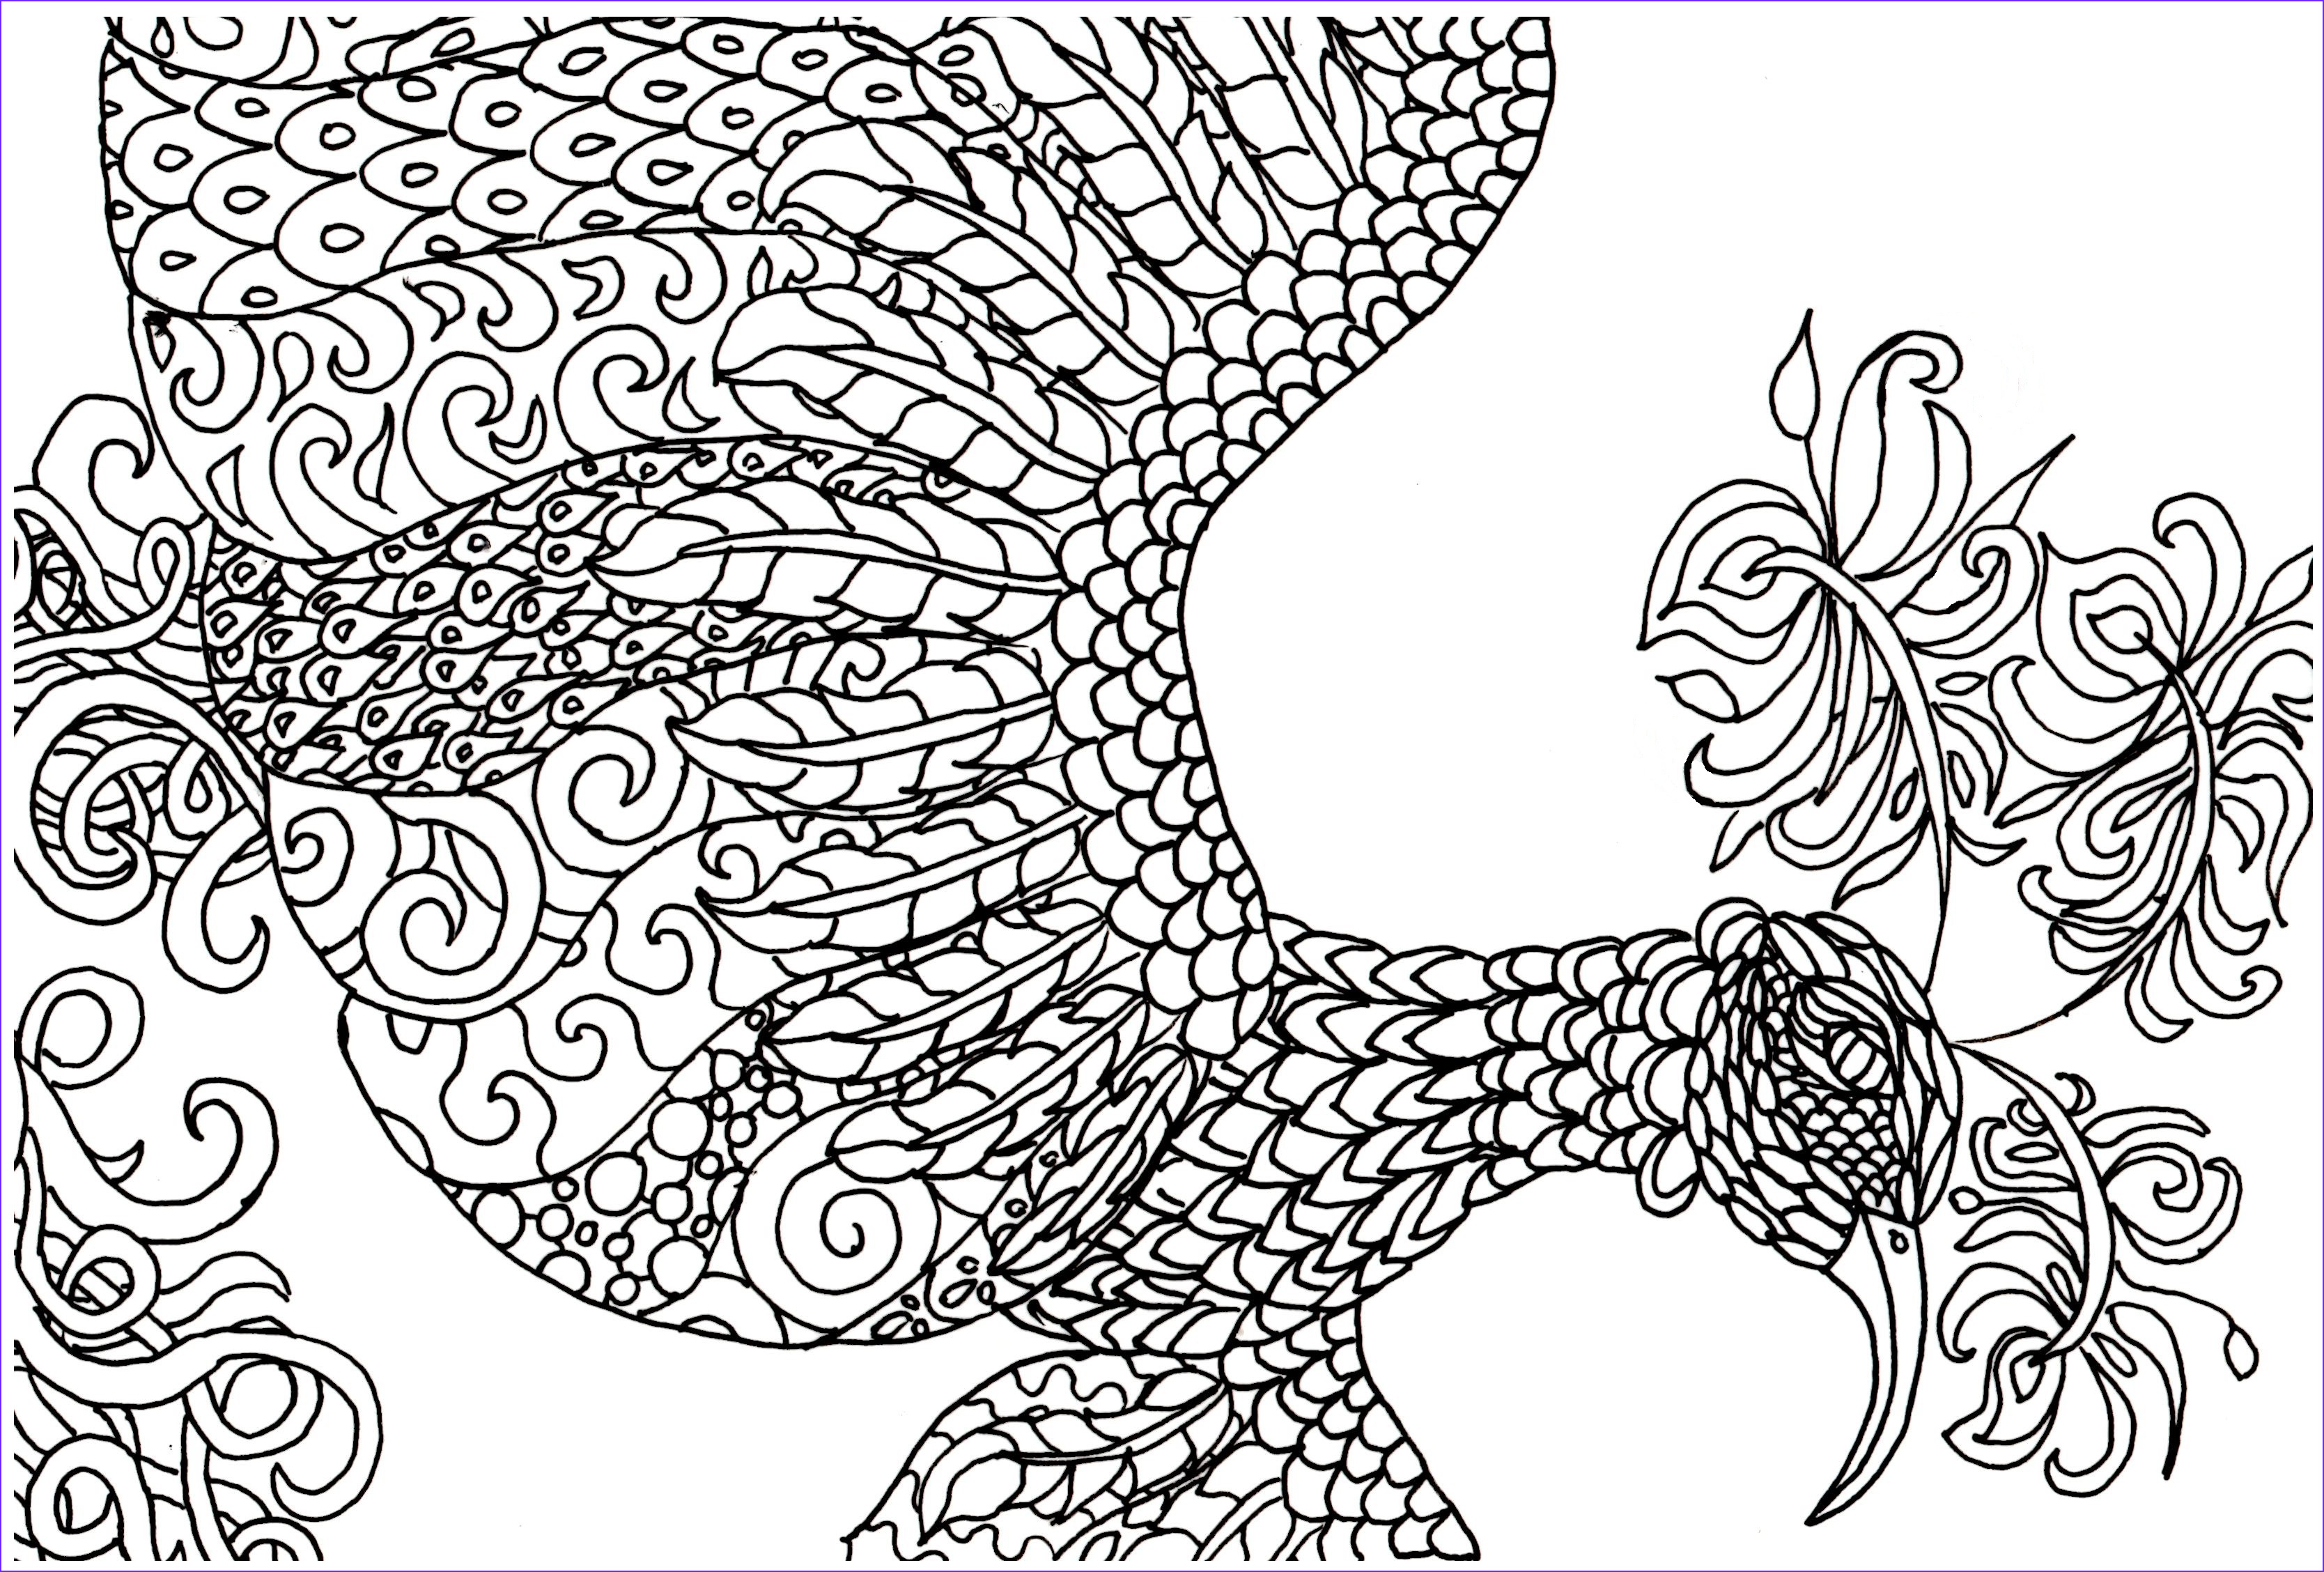 Detailed Coloring Pages coloringsuite